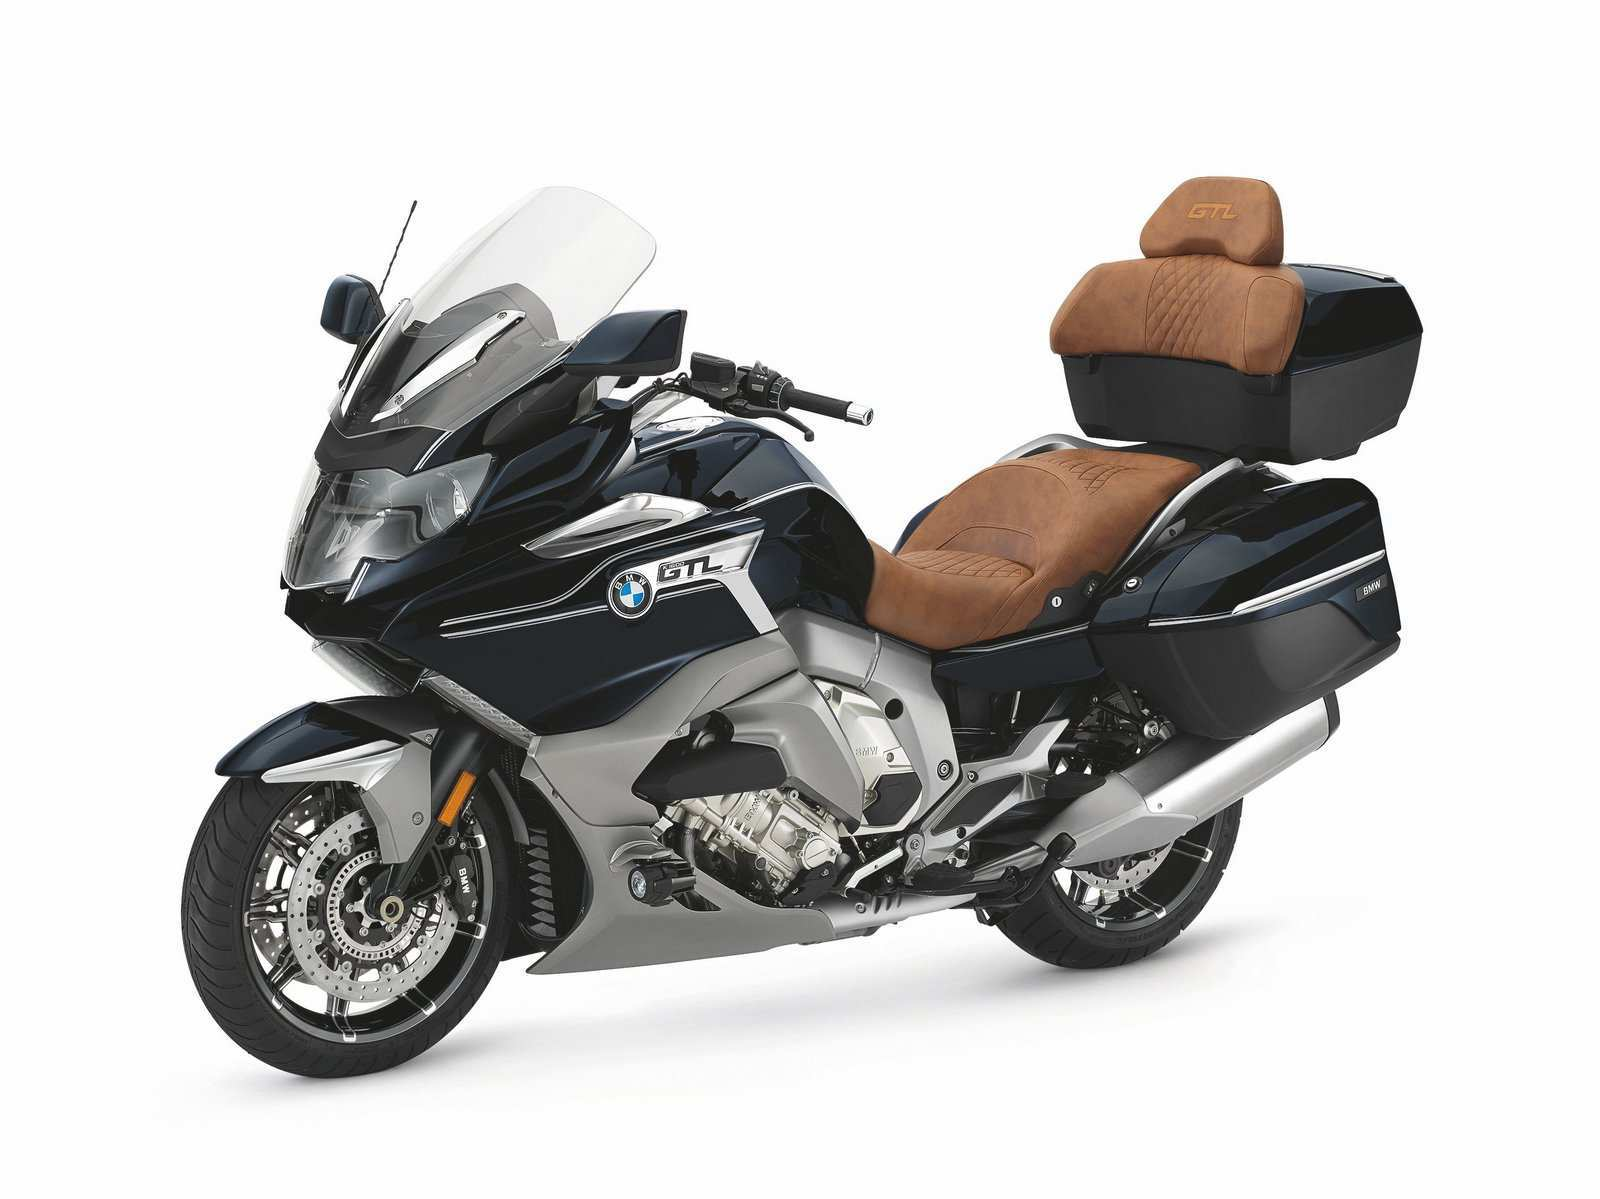 57 Concept of Neue BMW K 1600 Gt 2020 Exterior with Neue BMW K 1600 Gt 2020